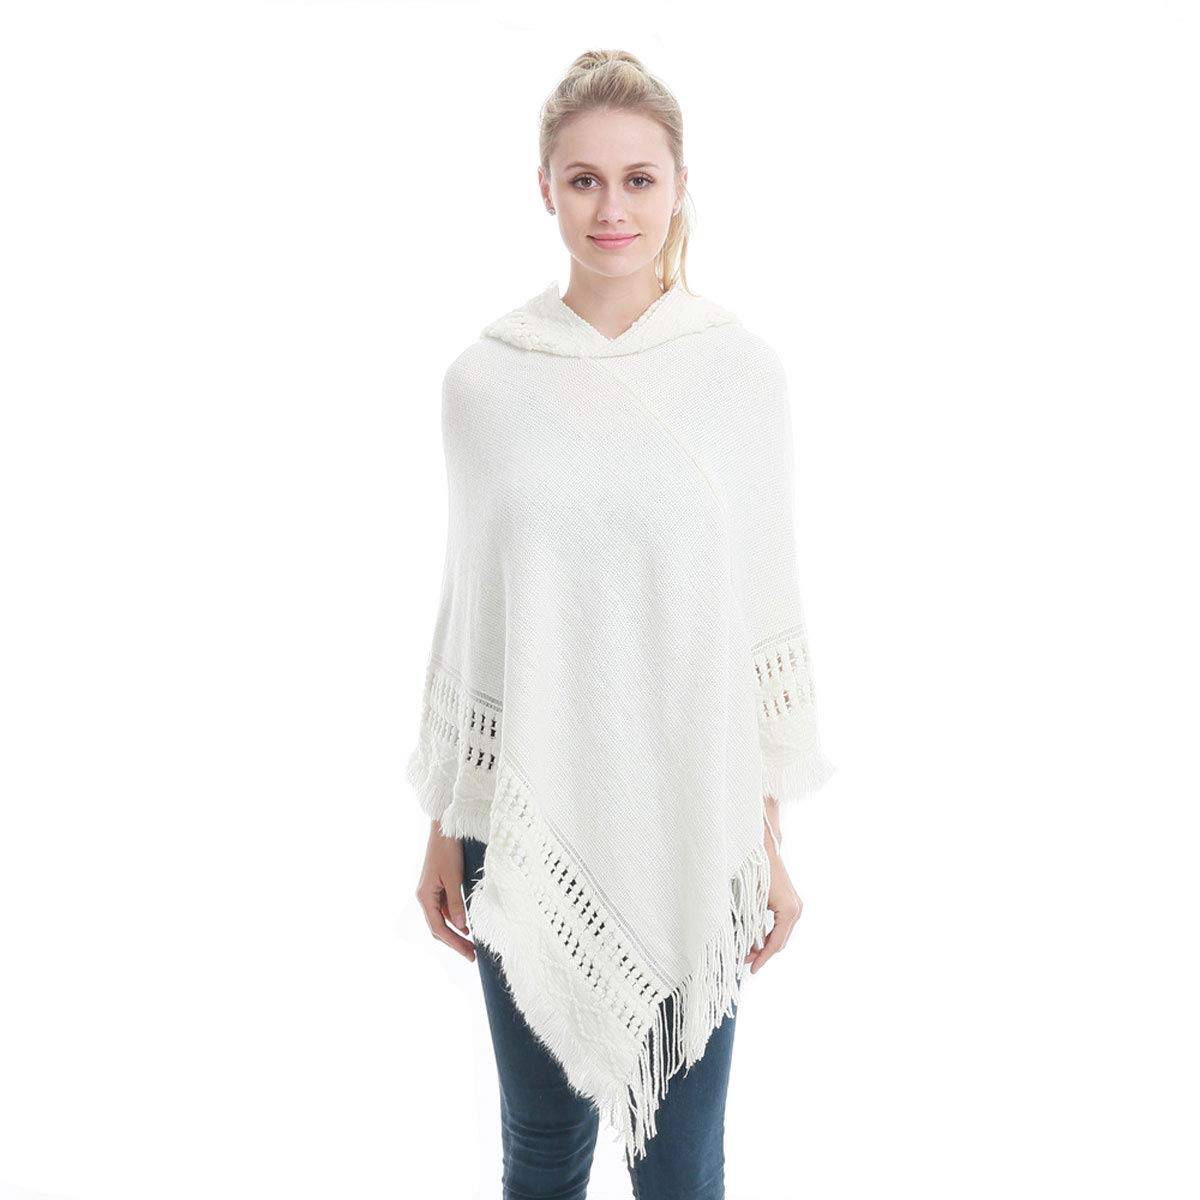 Boyzn Womens Cape Poncho Hoodie Knitted Pullover Sweater Winter Wrap Shawl Stylish Poncho Capes with Fringes